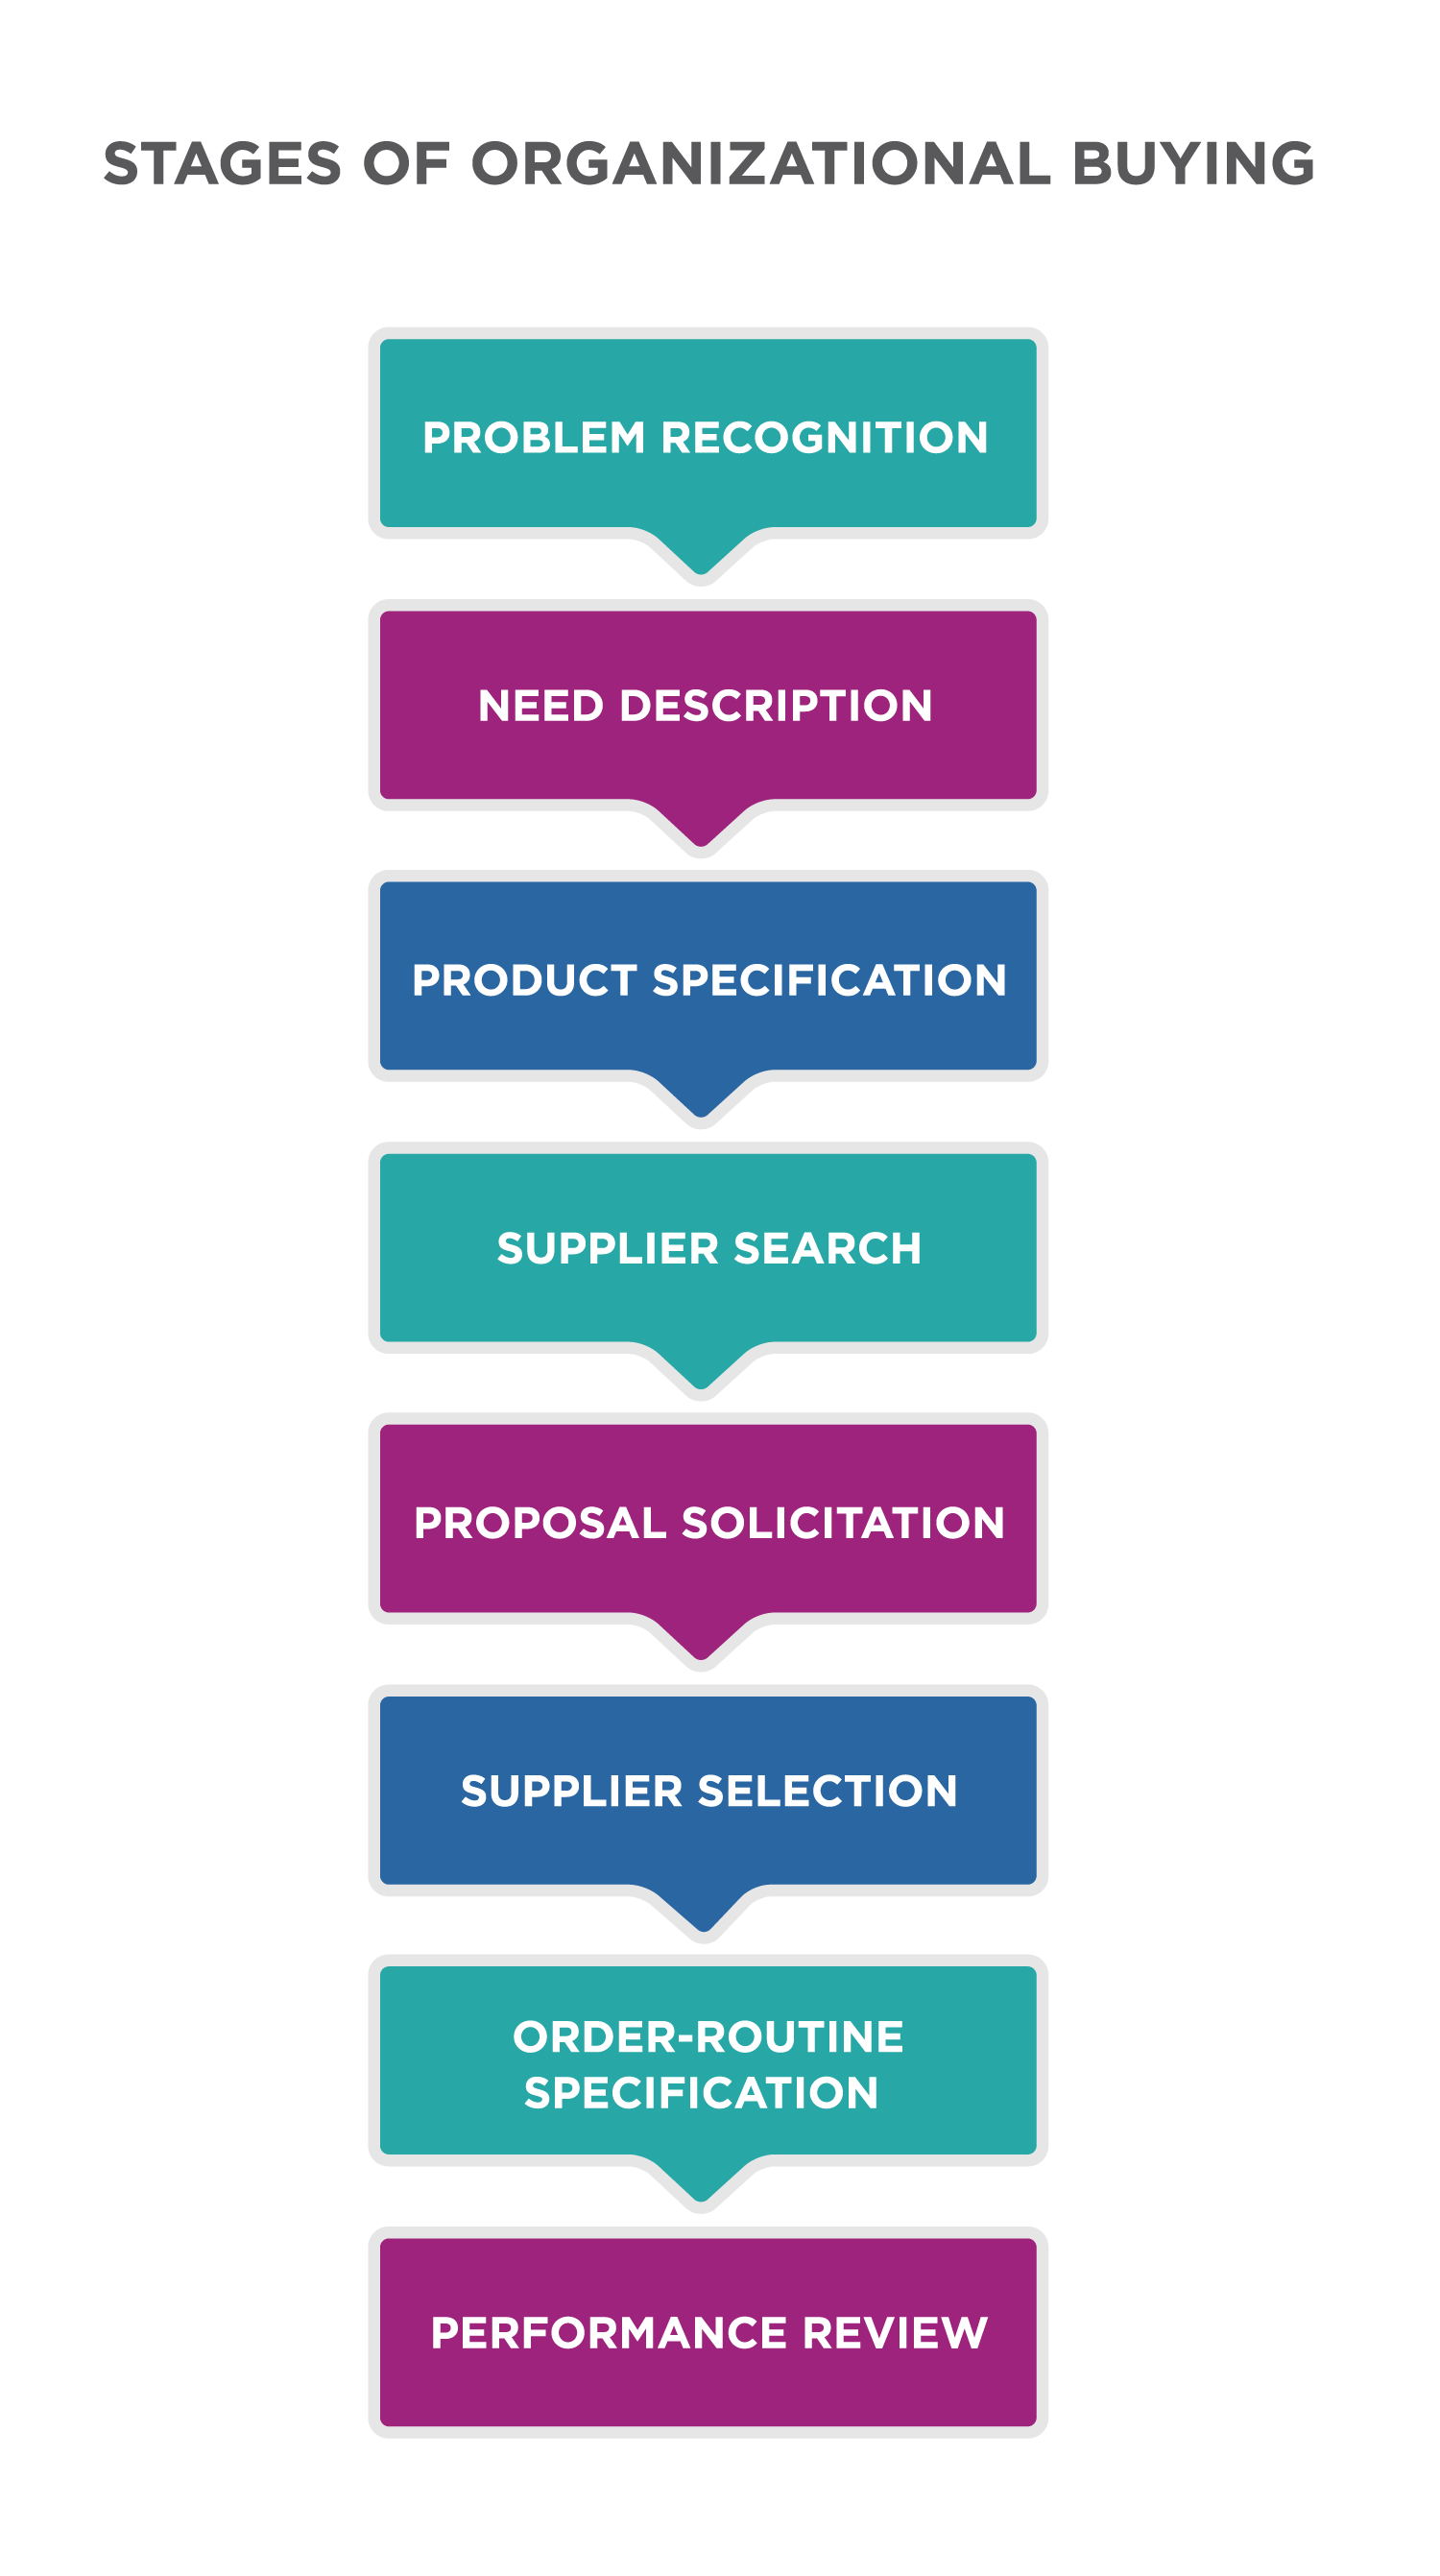 Stages of Organizational Buying. Problem recognition, need description, product specification, supplier search, proposal solicitation, supplier selection, order-routine specification, performance review